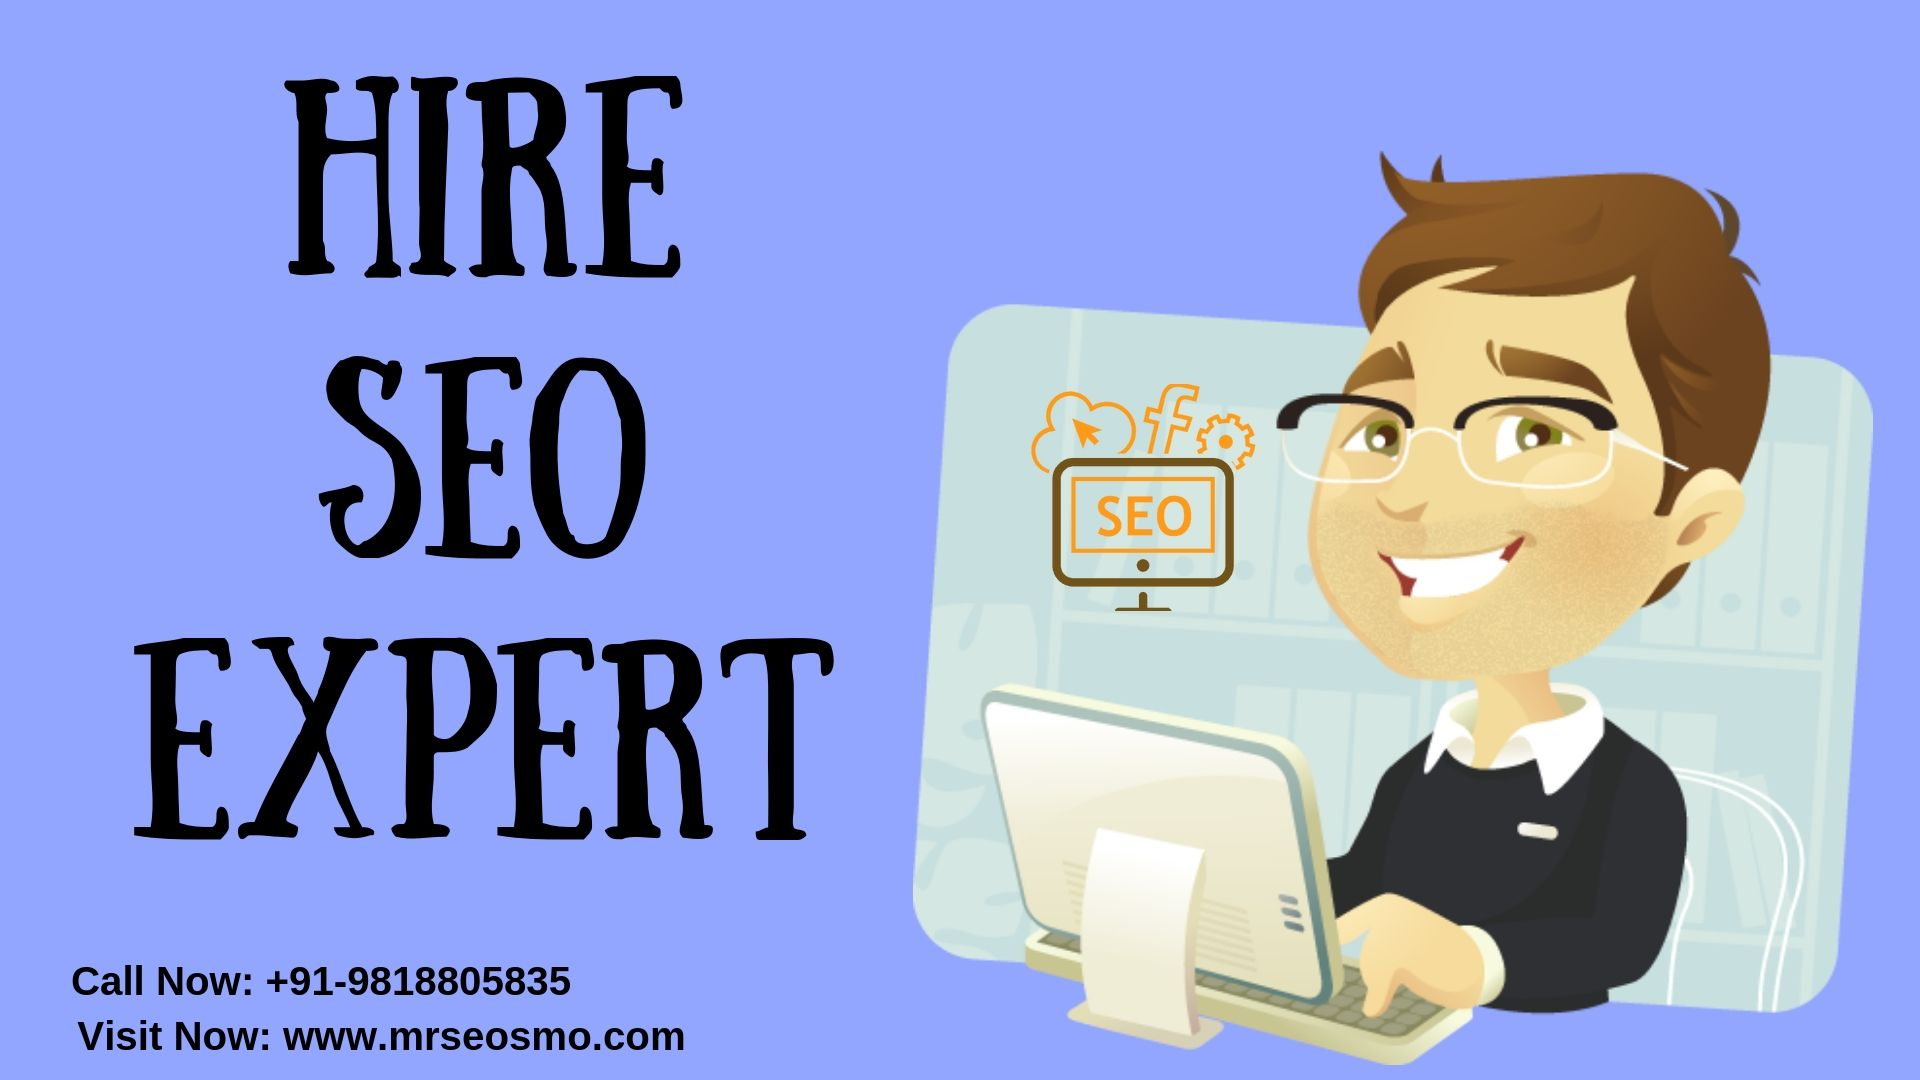 I work as freelance SEO Expert & search engine optimization